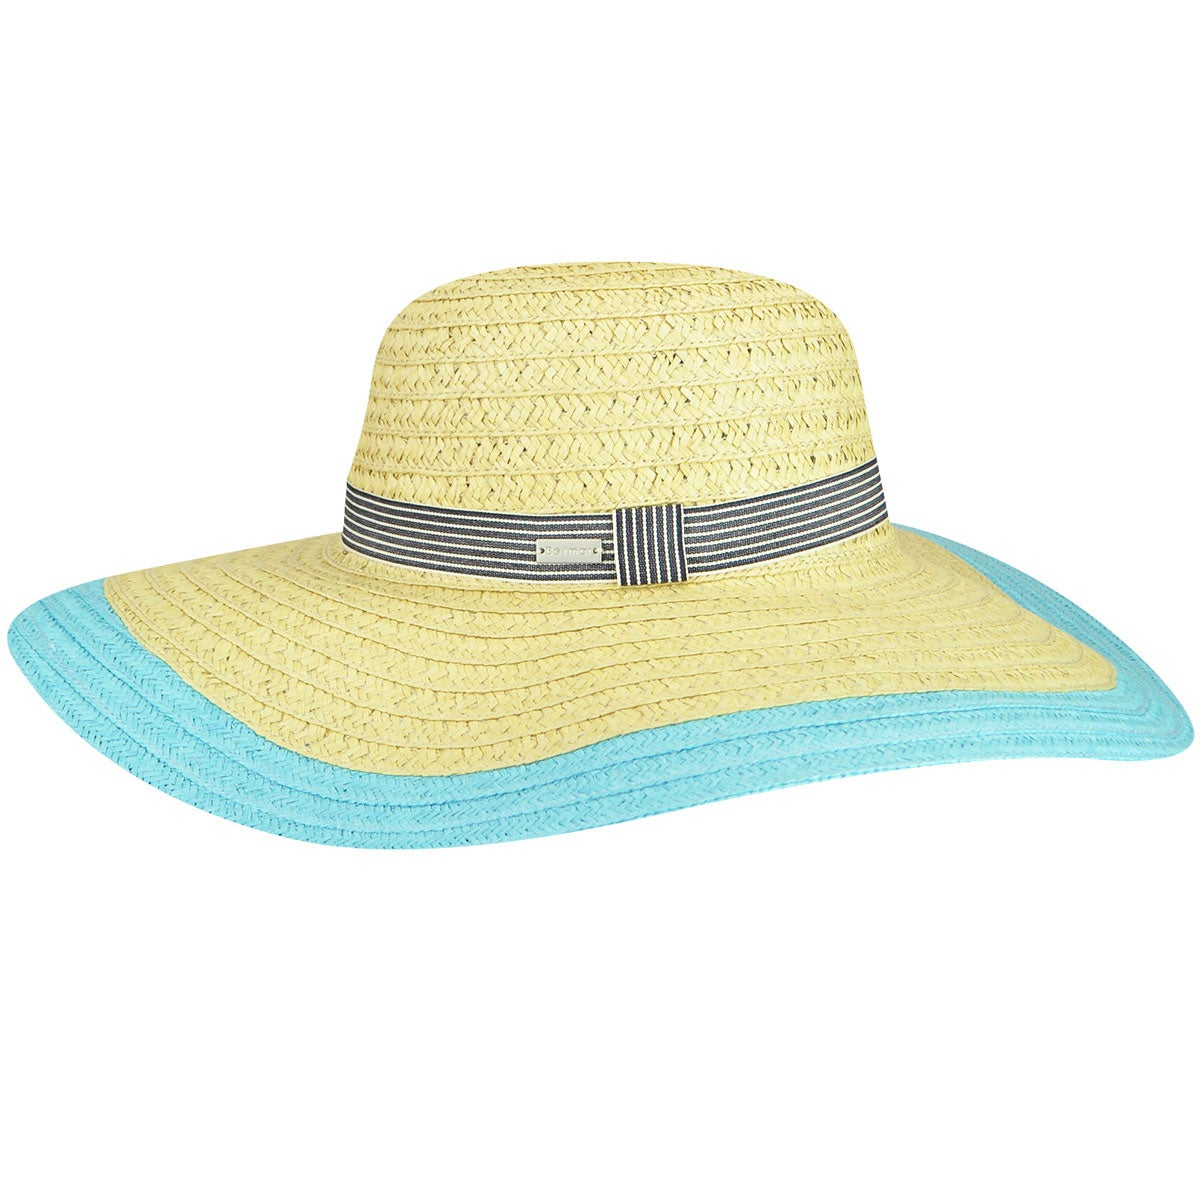 Betmar Lora Braided Floppy Wide Brim Hat in Natural,Turquoise